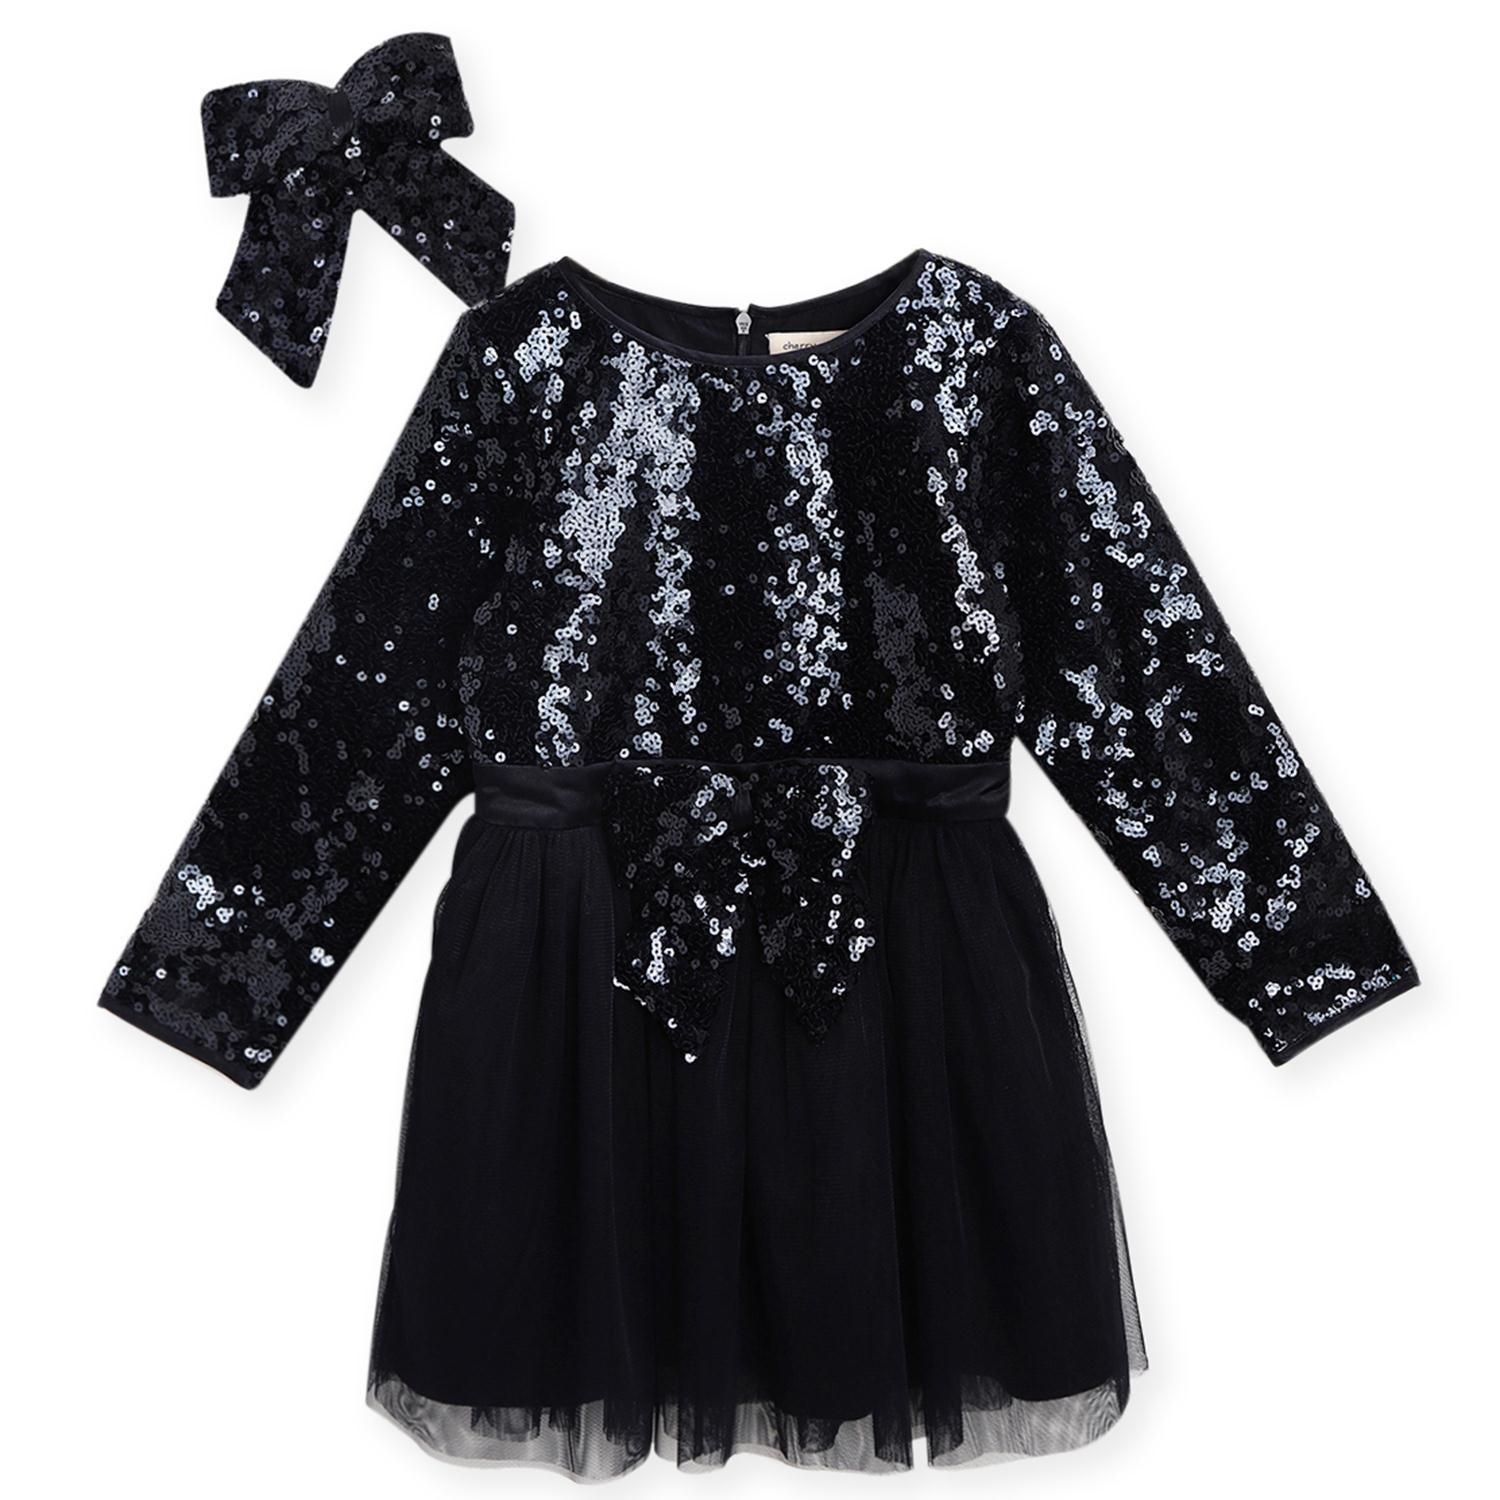 Starry-Sequin-Dress